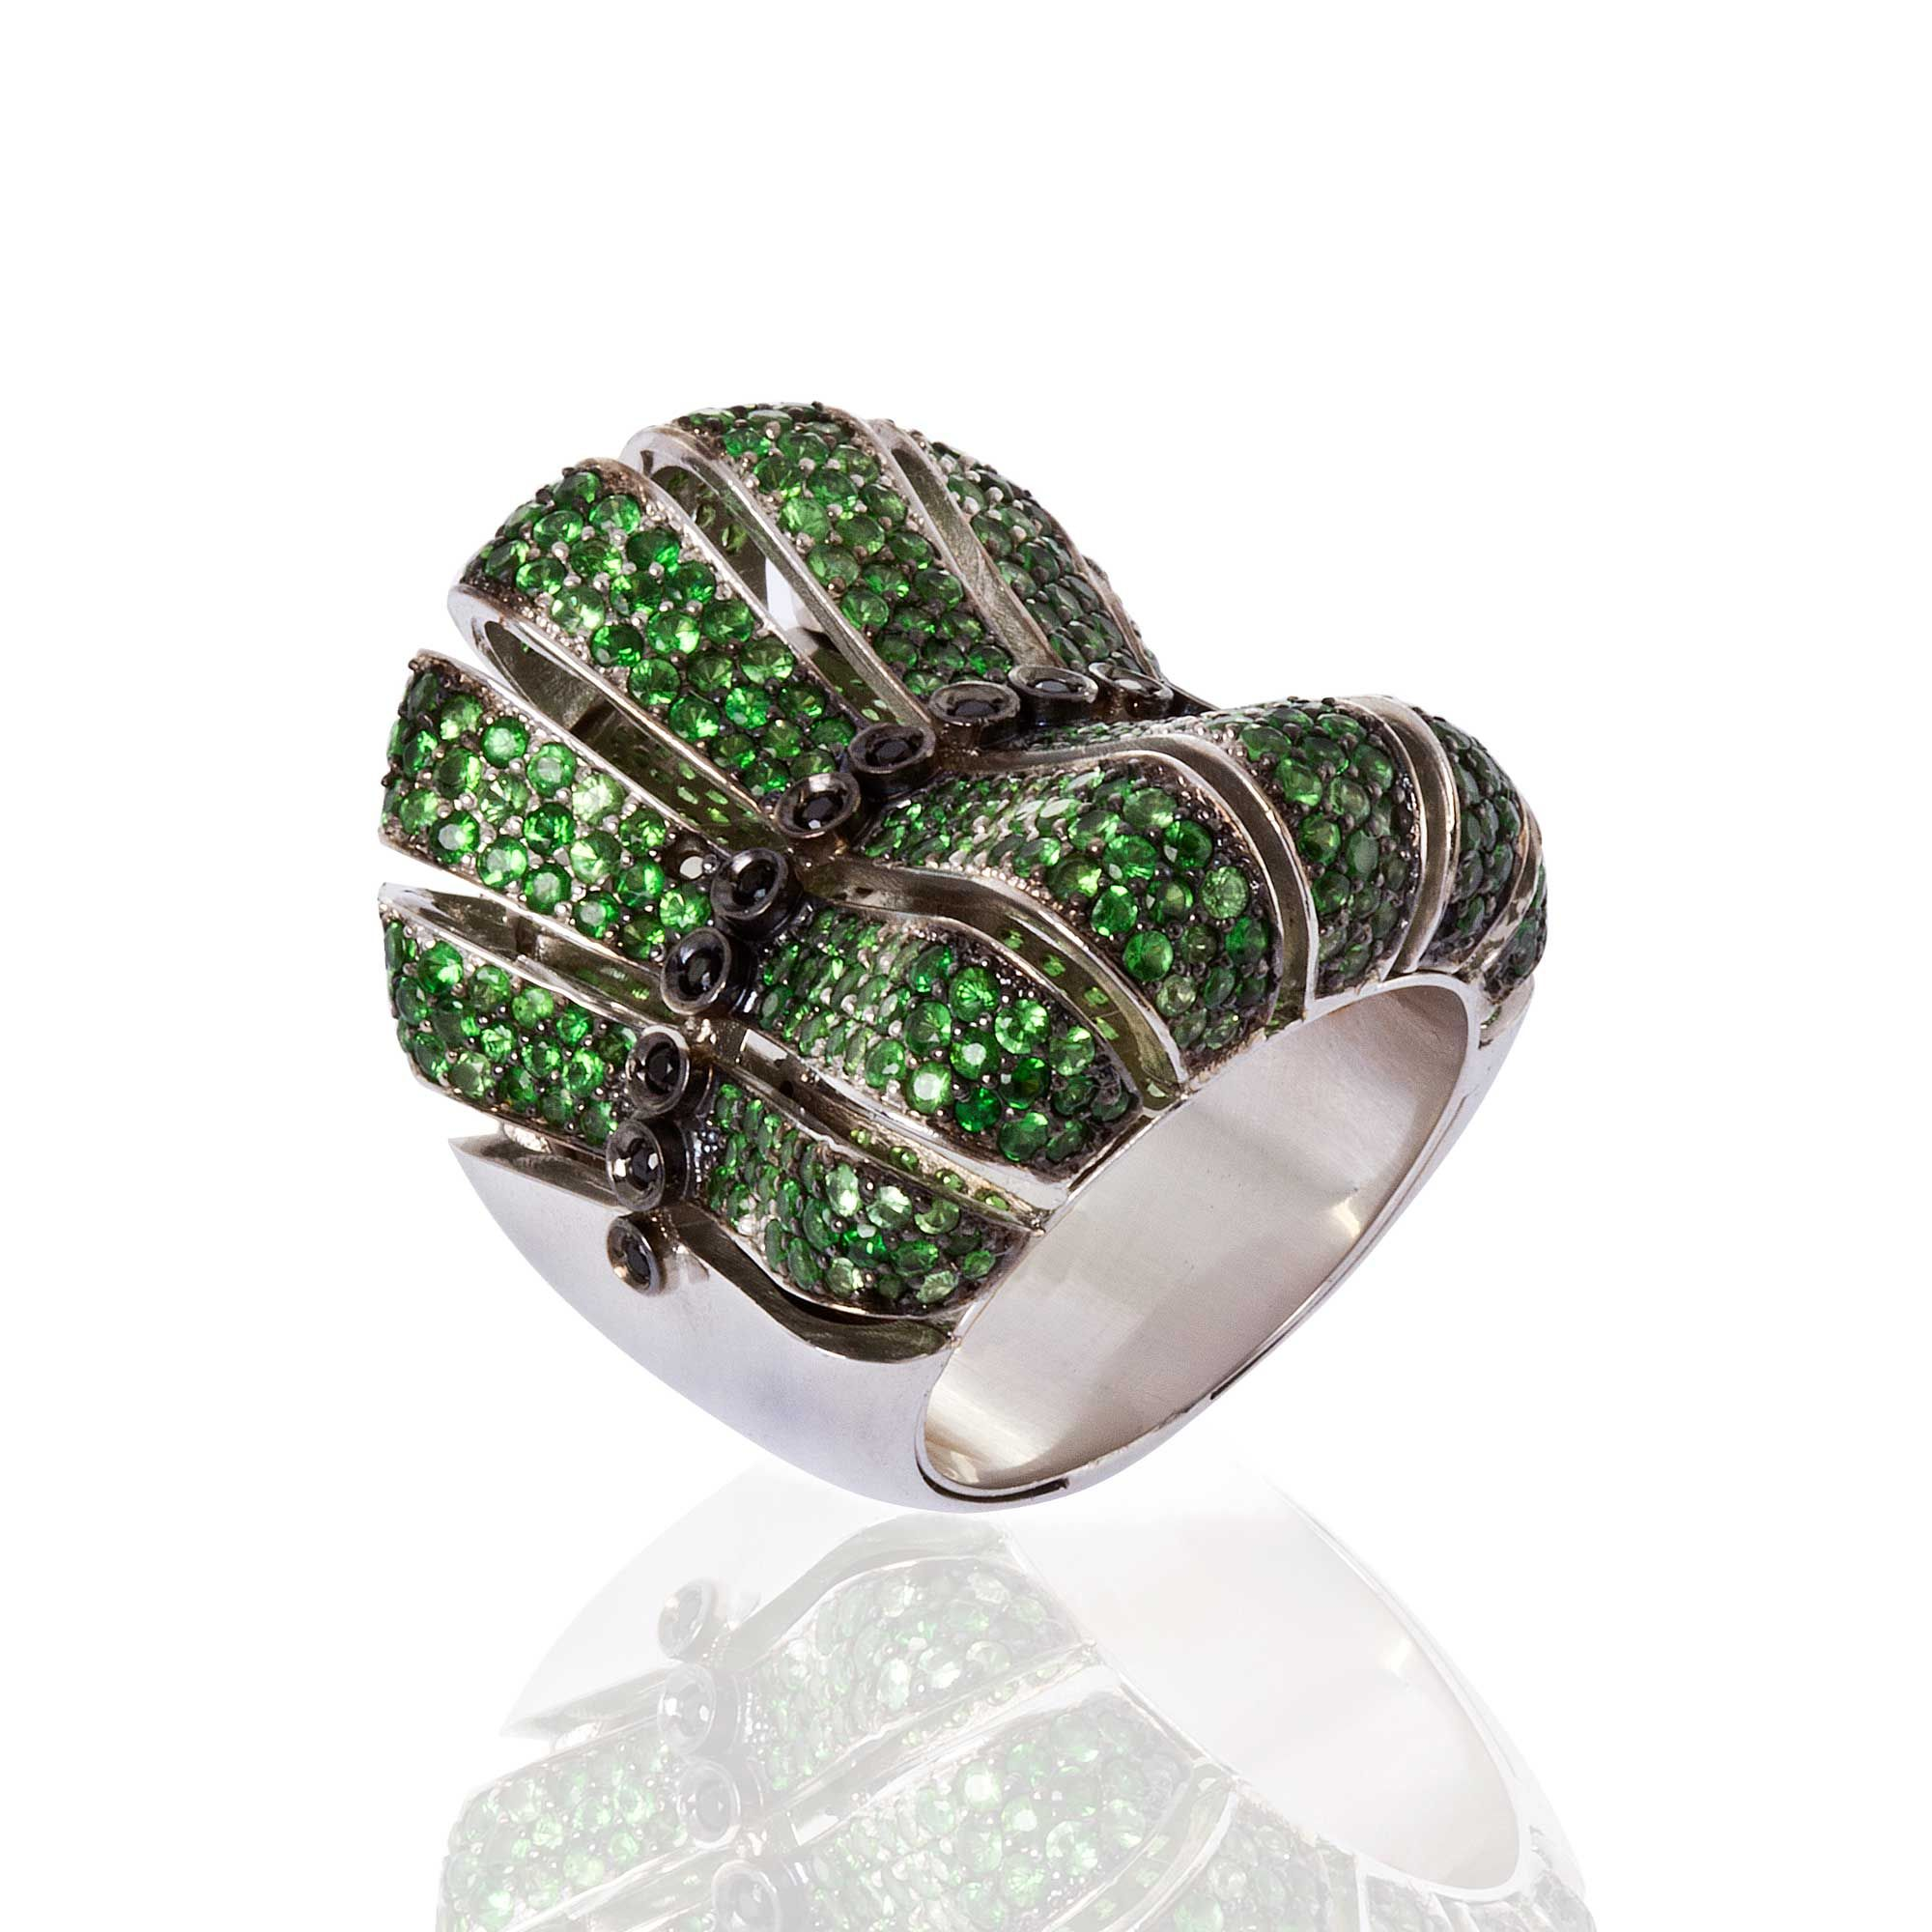 tw philip tsavorite engagement ring in diamonds with yellow green garnet rings gold zahm